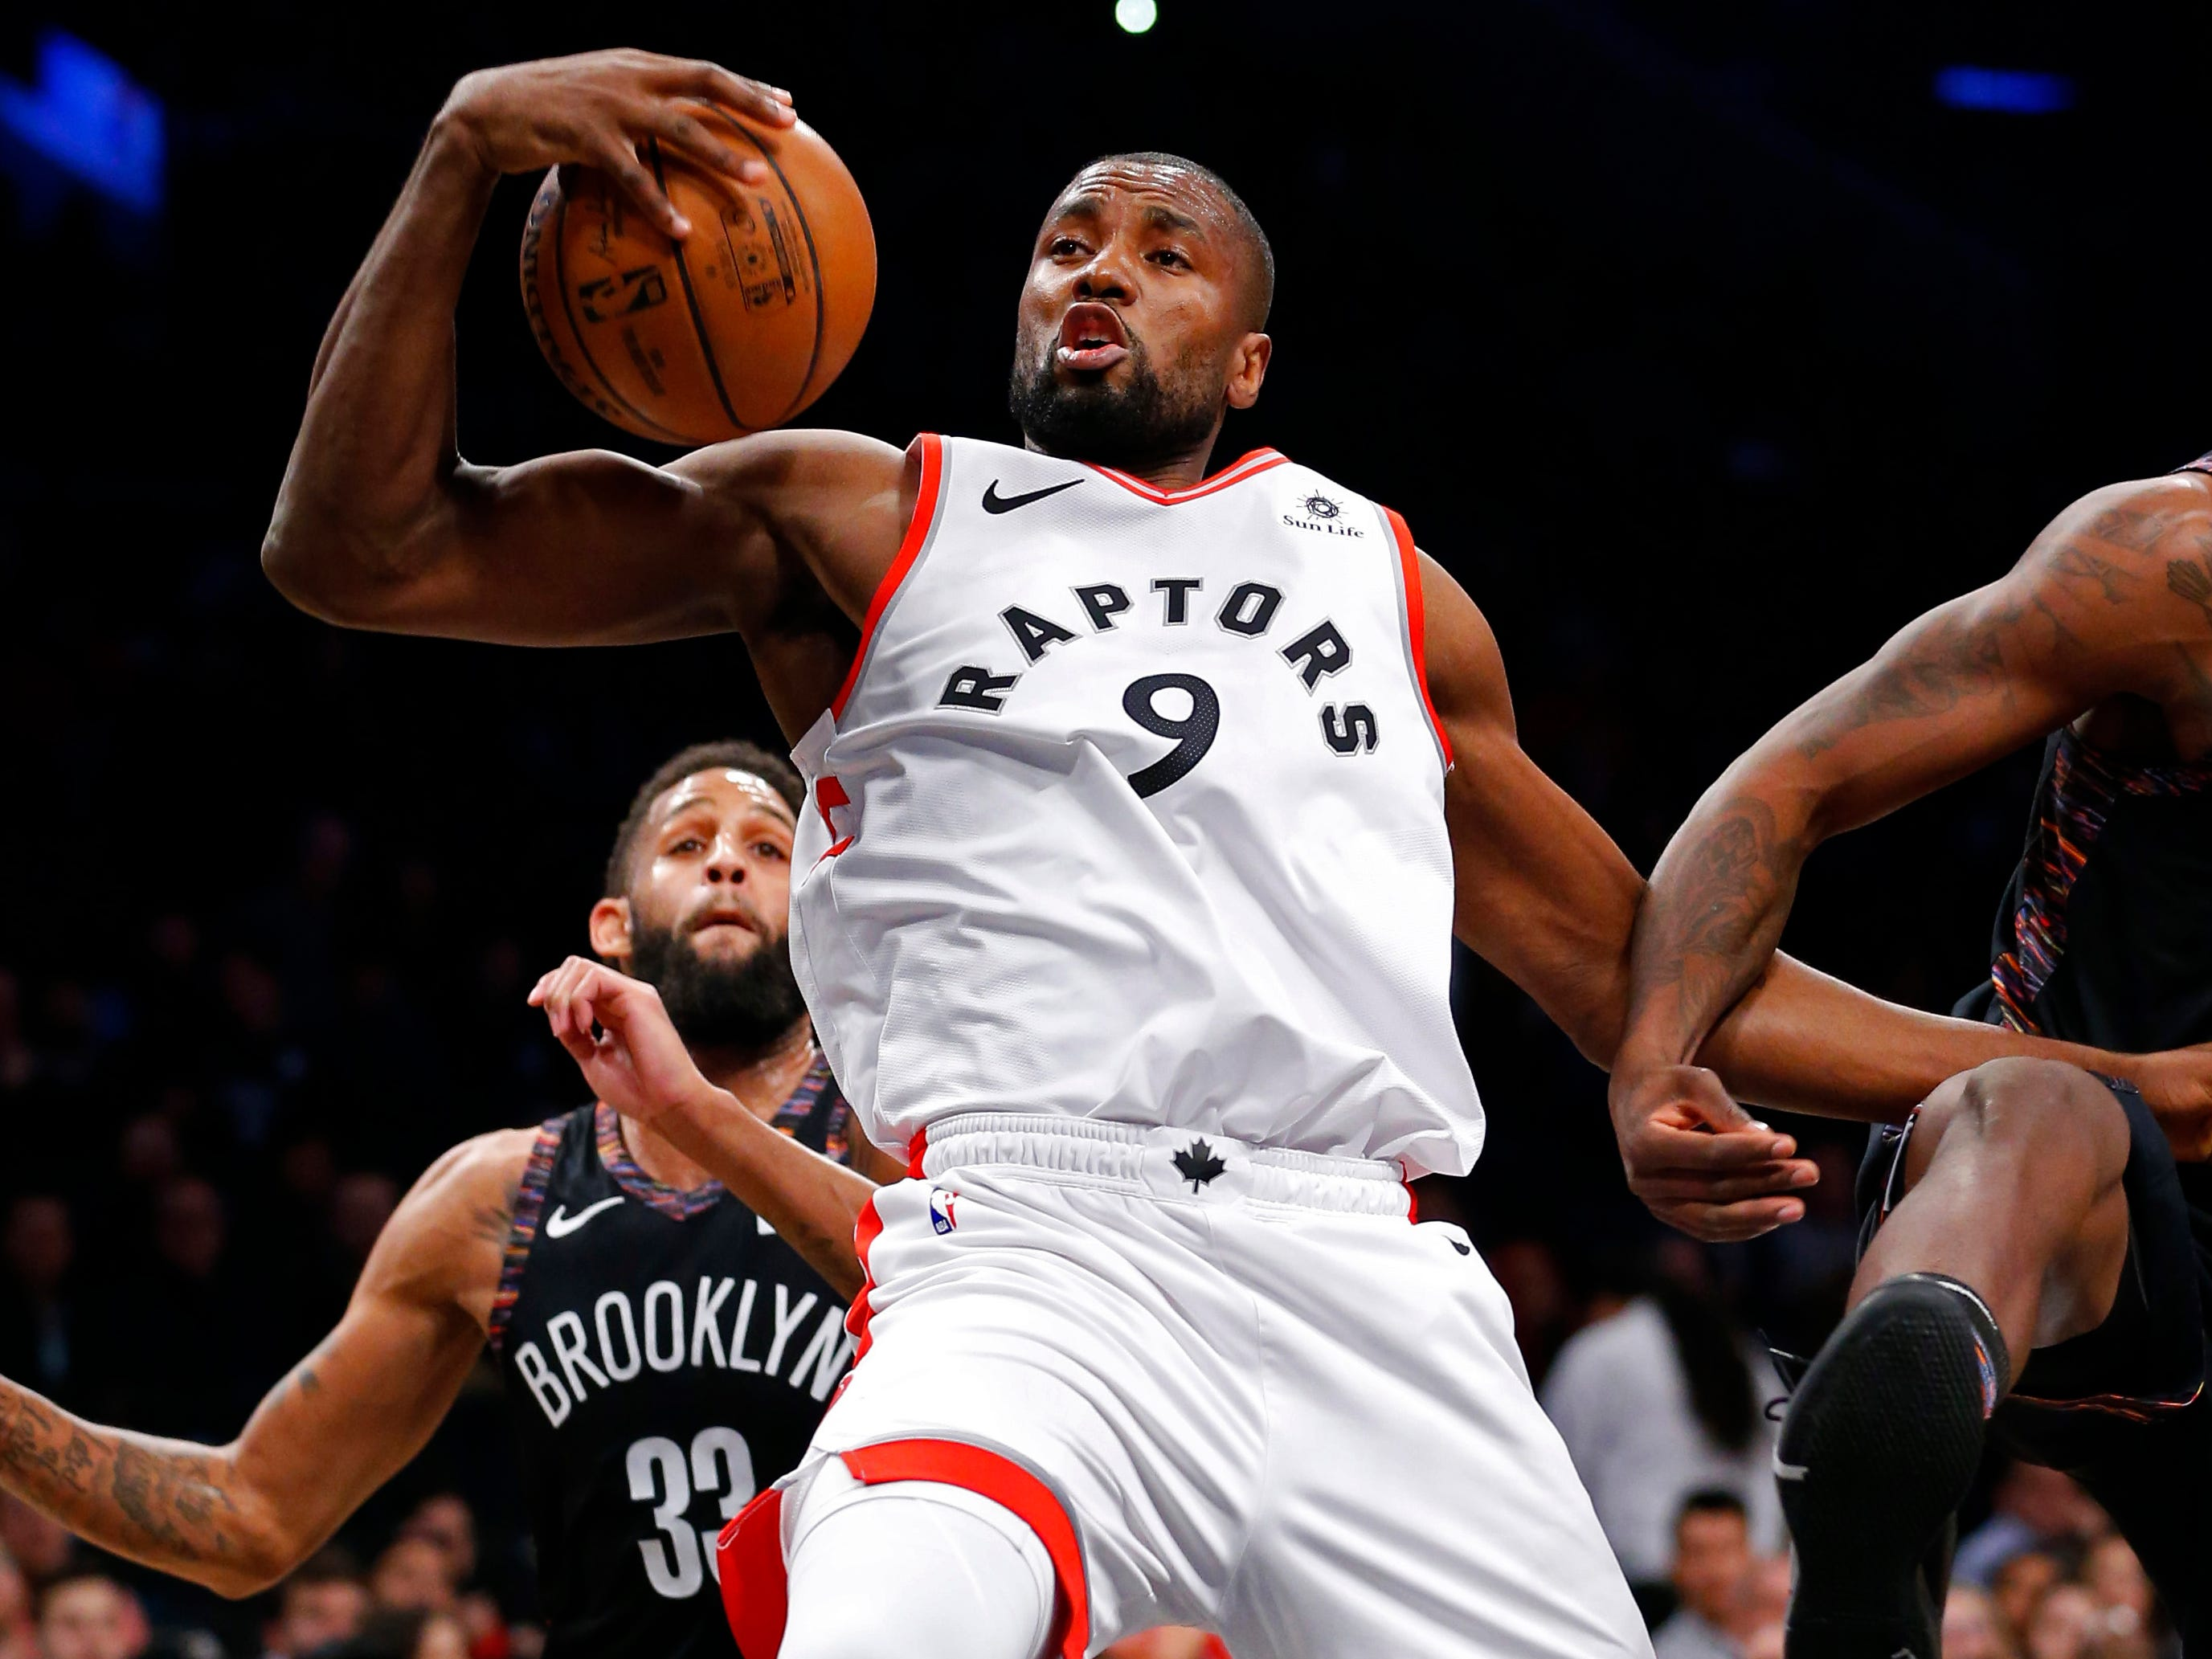 Dec. 7: Raptors forward Serge Ibaka pulls down a one-handed rebound during the first half against the Nets in Brooklyn.